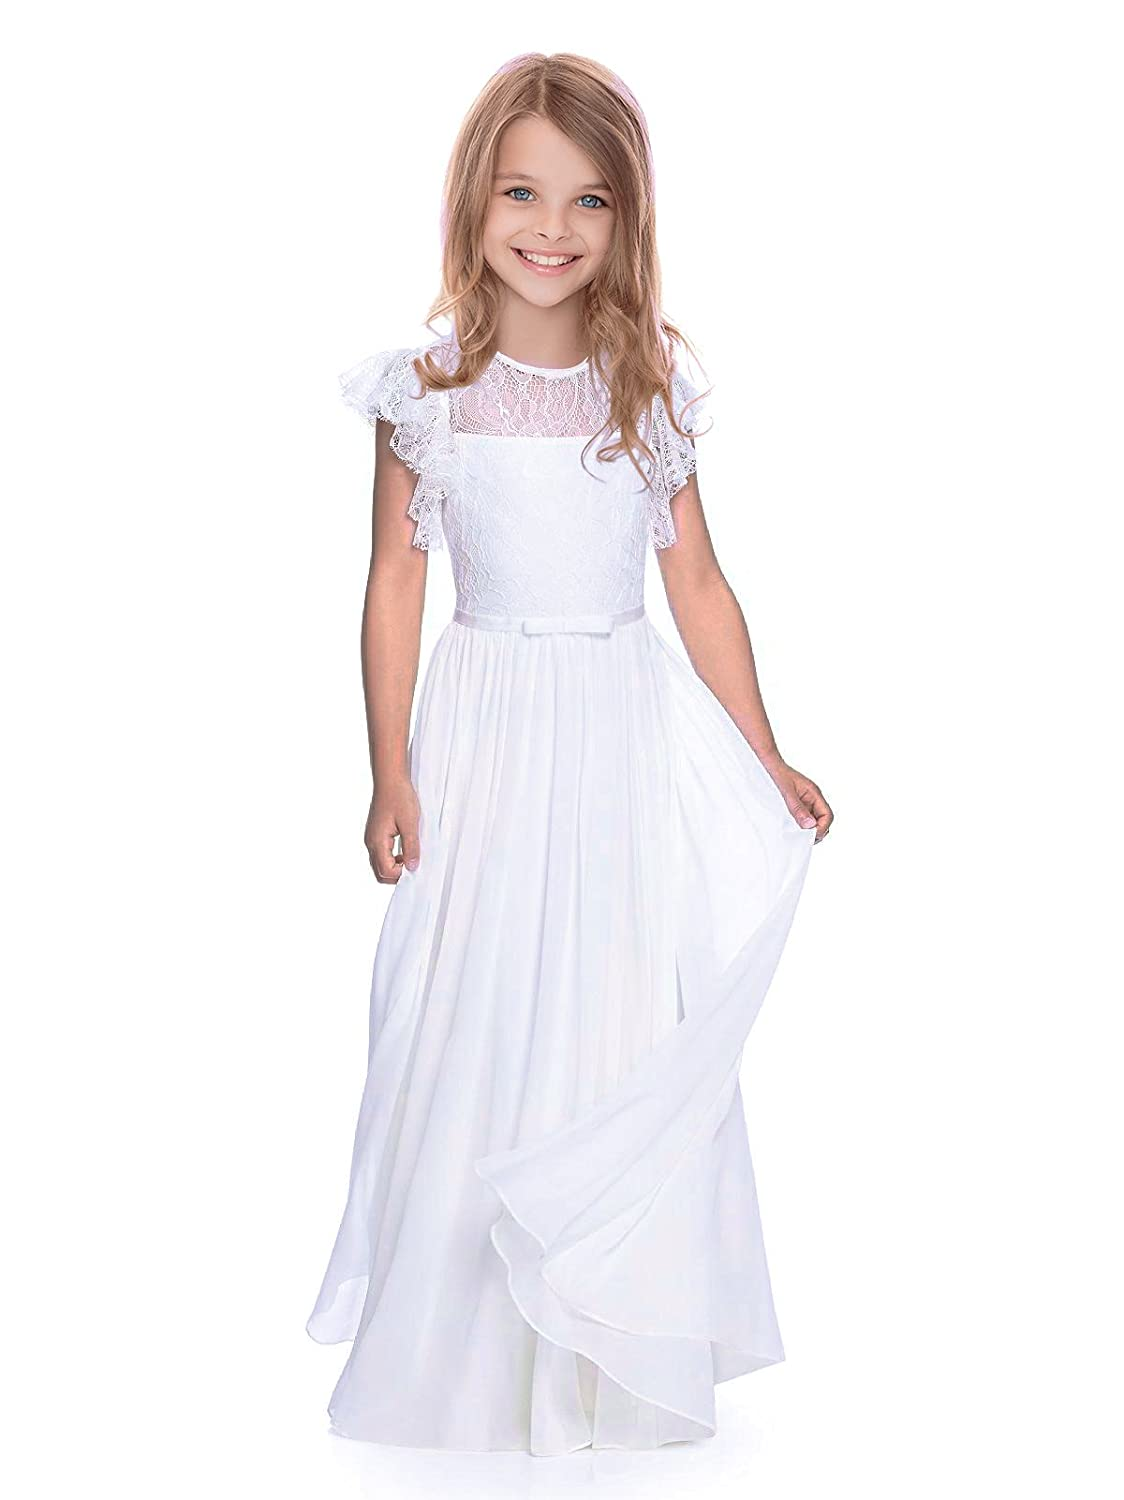 AbaoSisters Flutter Sleeves A-line Flower Girl Dress QMW007